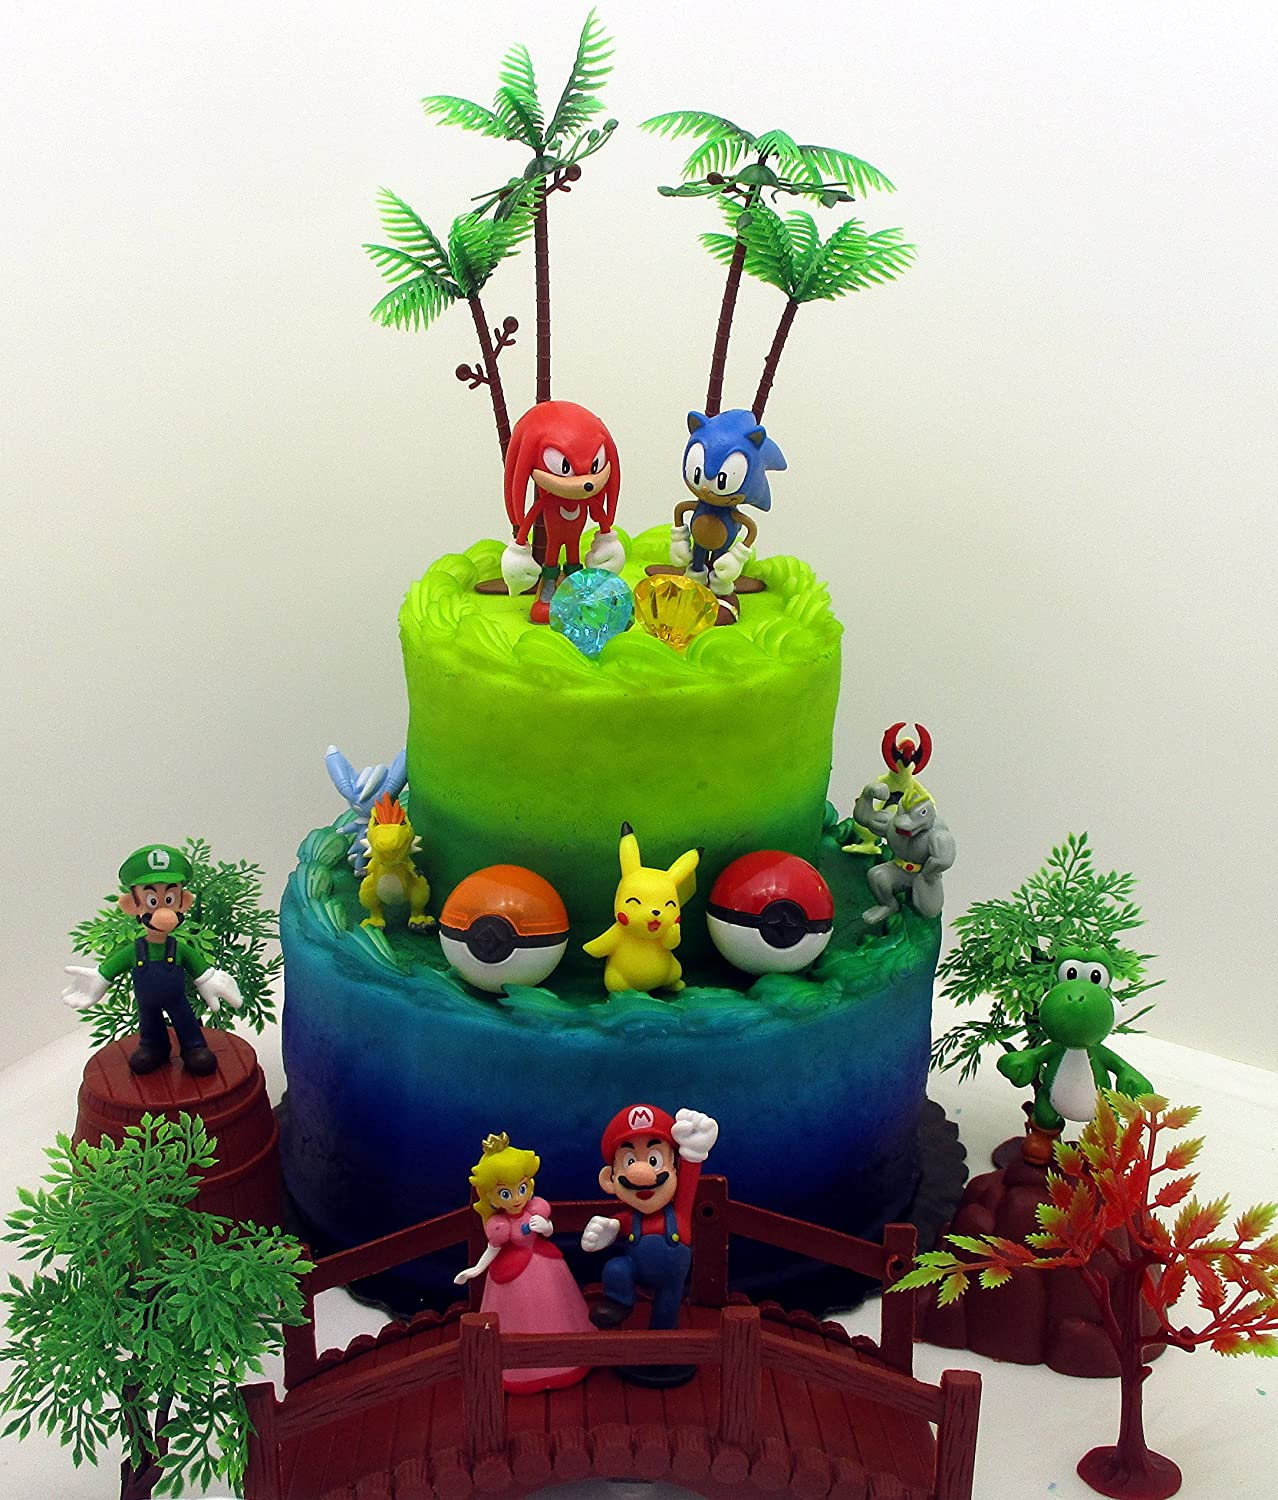 Amazon Com Video Gaming Themed Birthday Cake Topper Set Featuring Random Sonic Figures And Random Mario Brothers Figures And Other Iconic Gaming Characters Toys Games